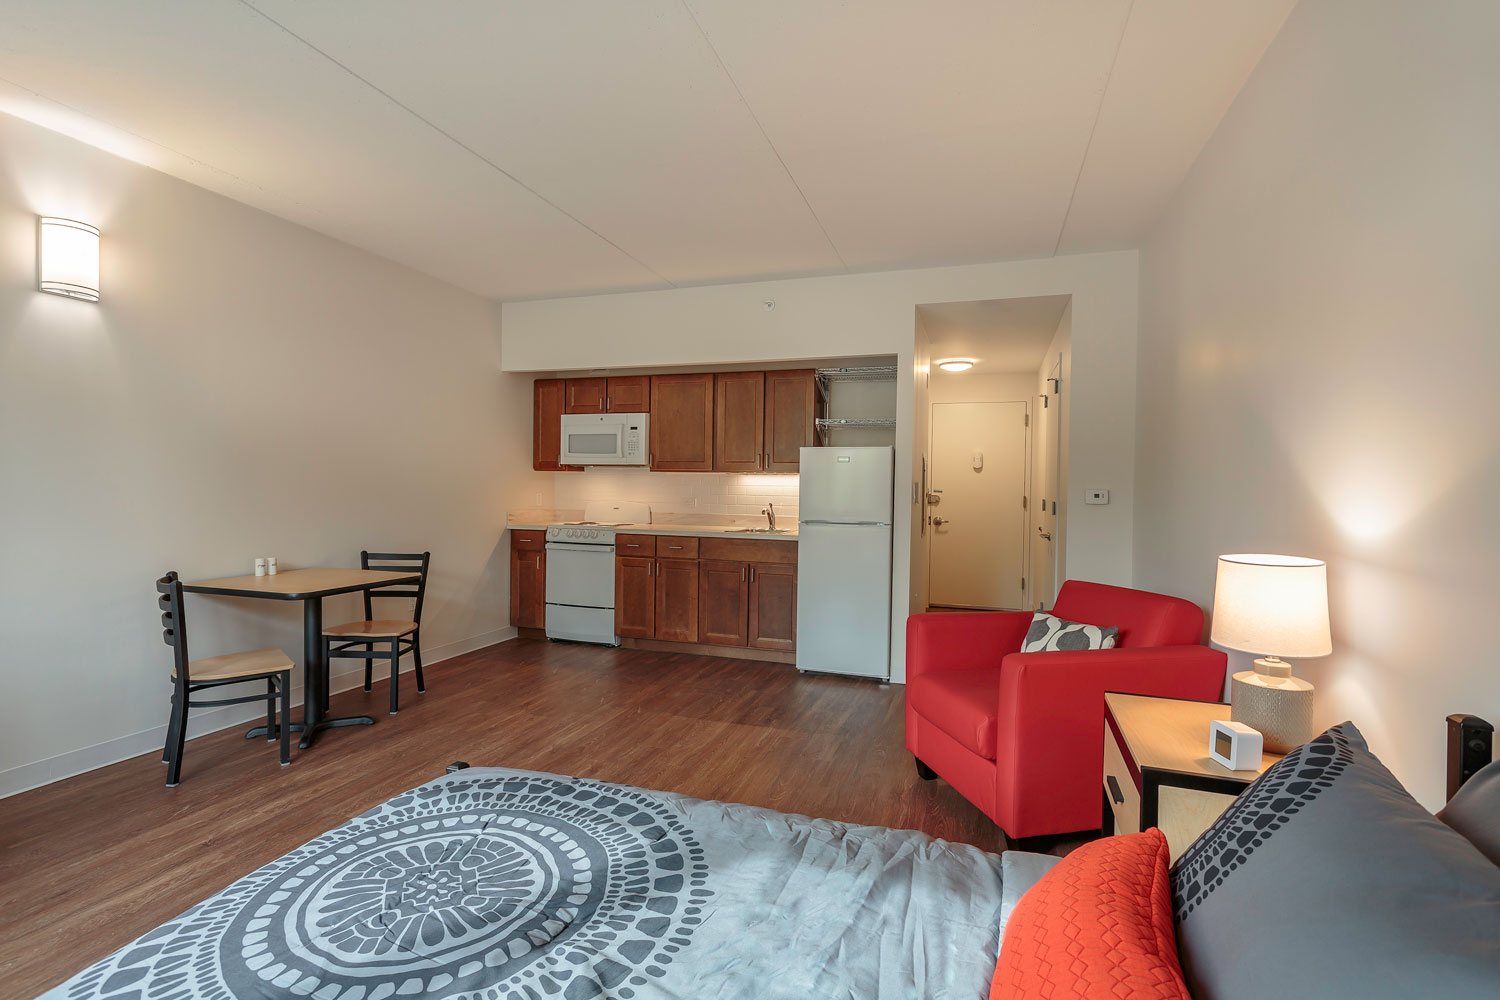 SRO rooming units each have kitchenettes and three piece bathrooms.